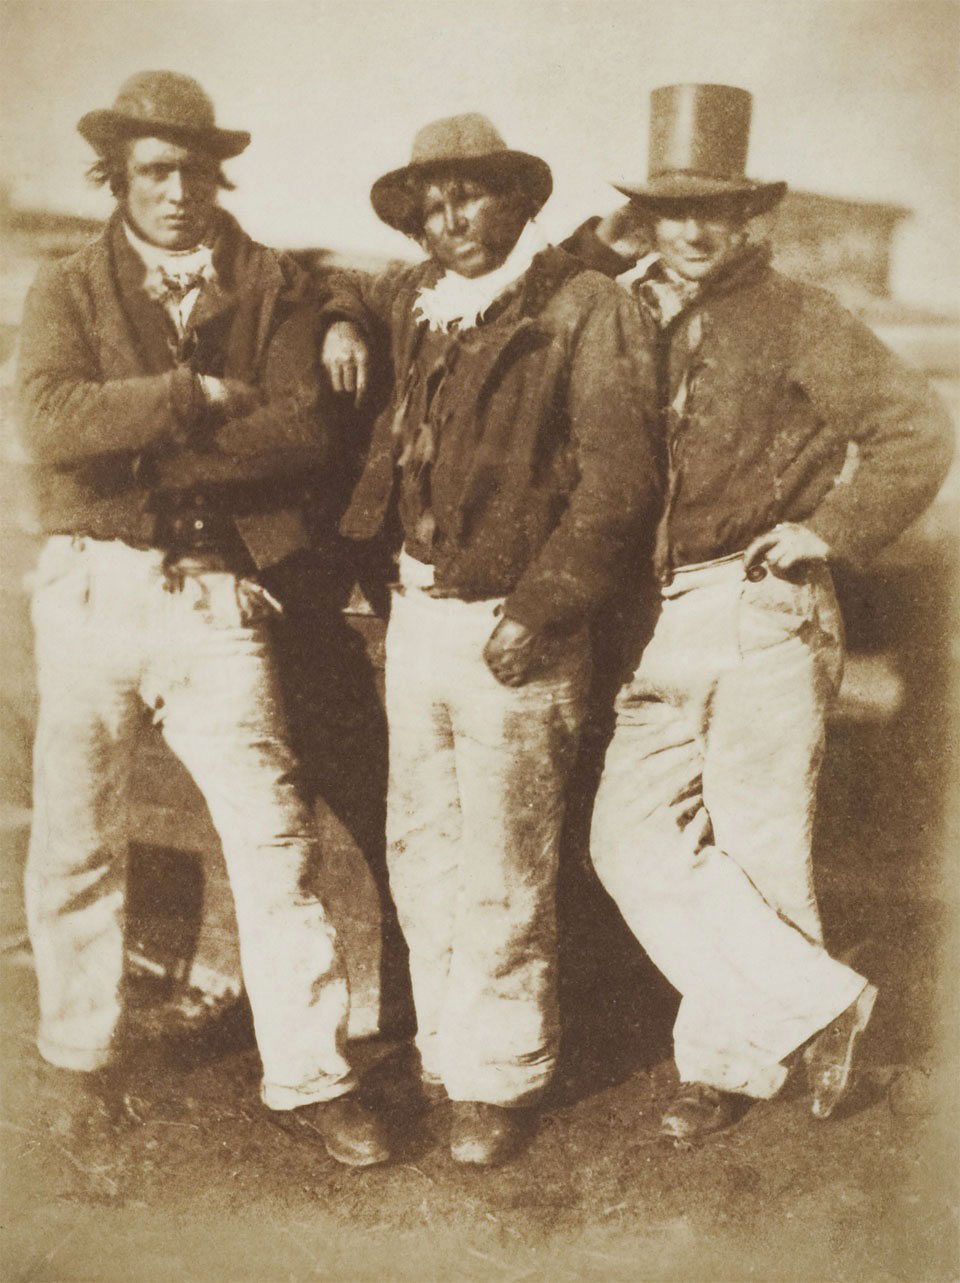 David Octavius Hill and Robert Adamson <br />Newhaven fishermen<br />c. 1845<br />Photograph, salted paper print from a paper negative<br />© Wilson Centre for Photography